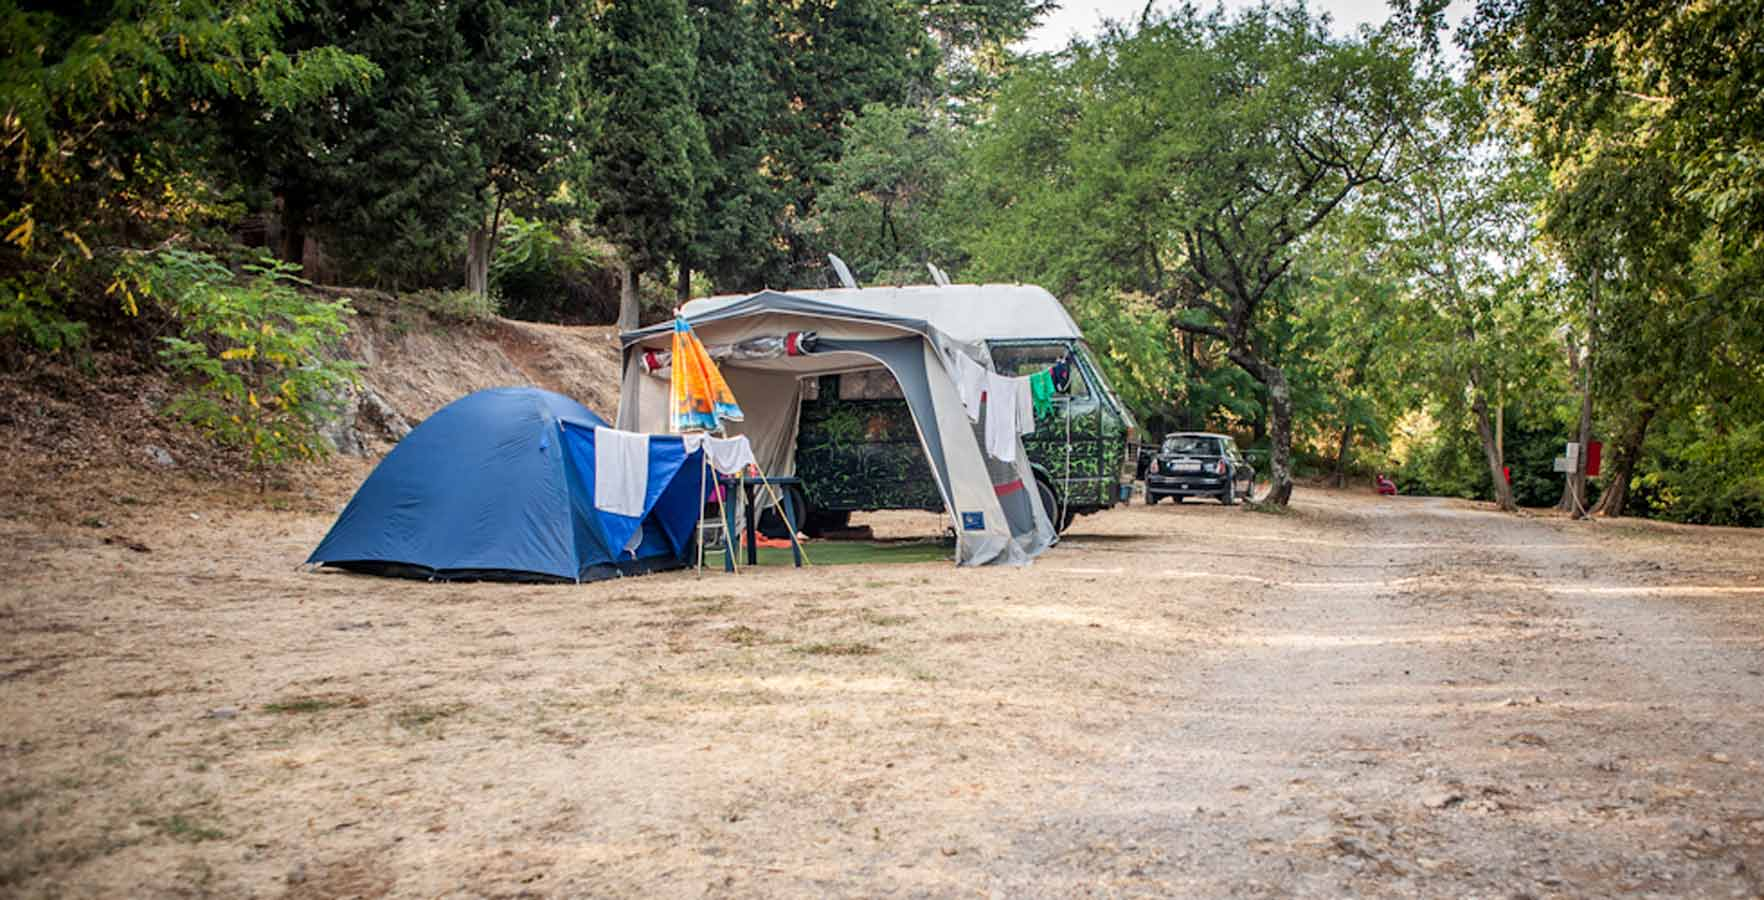 Campsite Opatija - camping in the shade